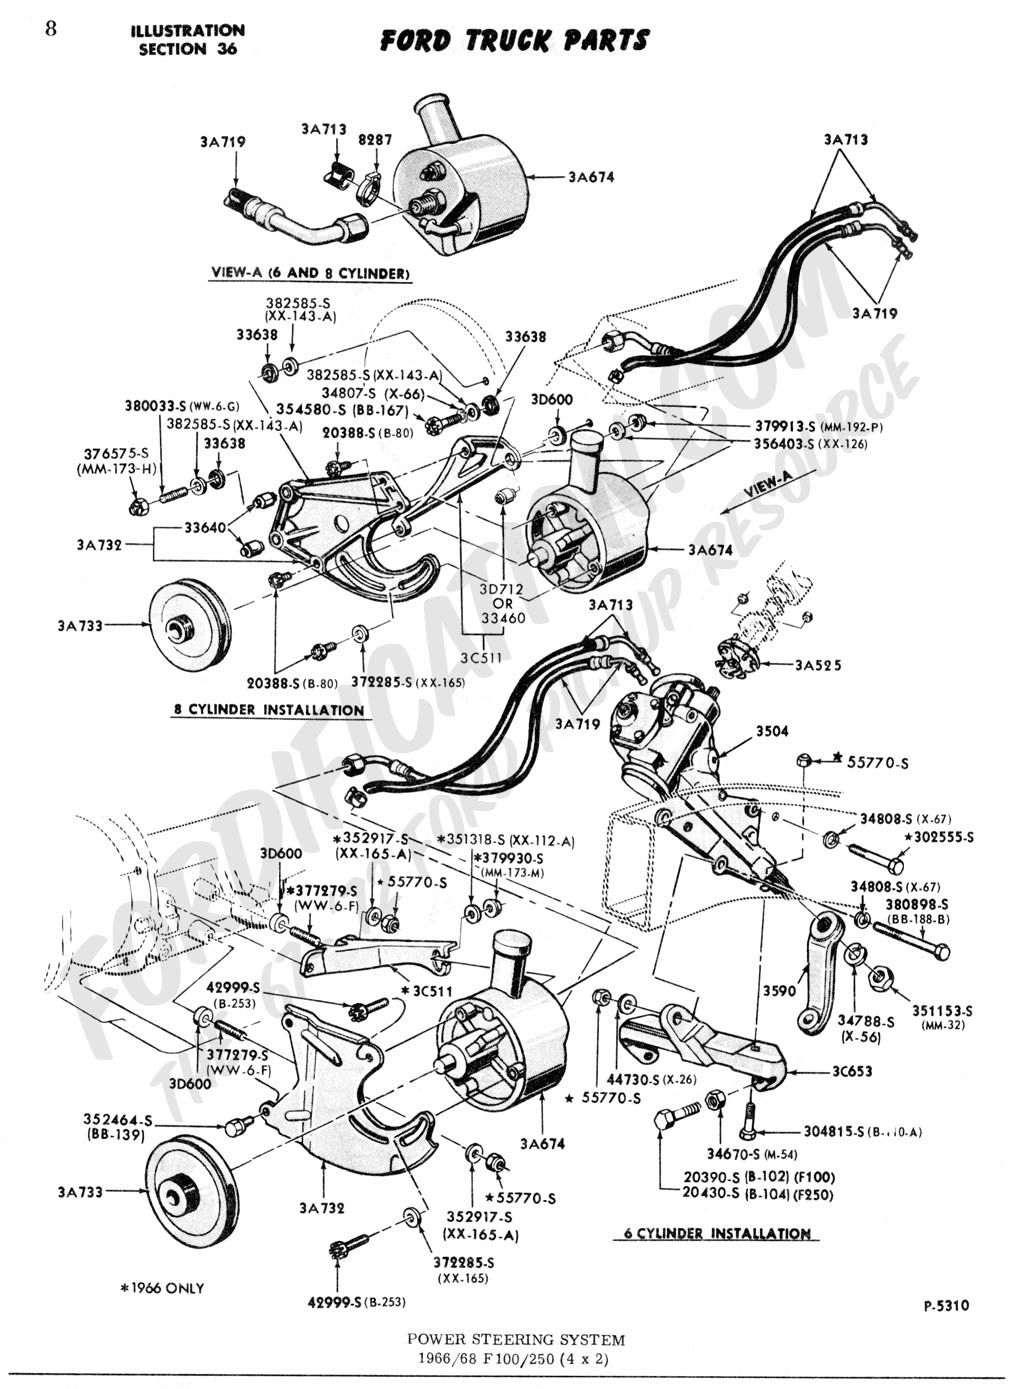 1963 ford f100 wiring diagram 2002 f350 radio falcon steering column